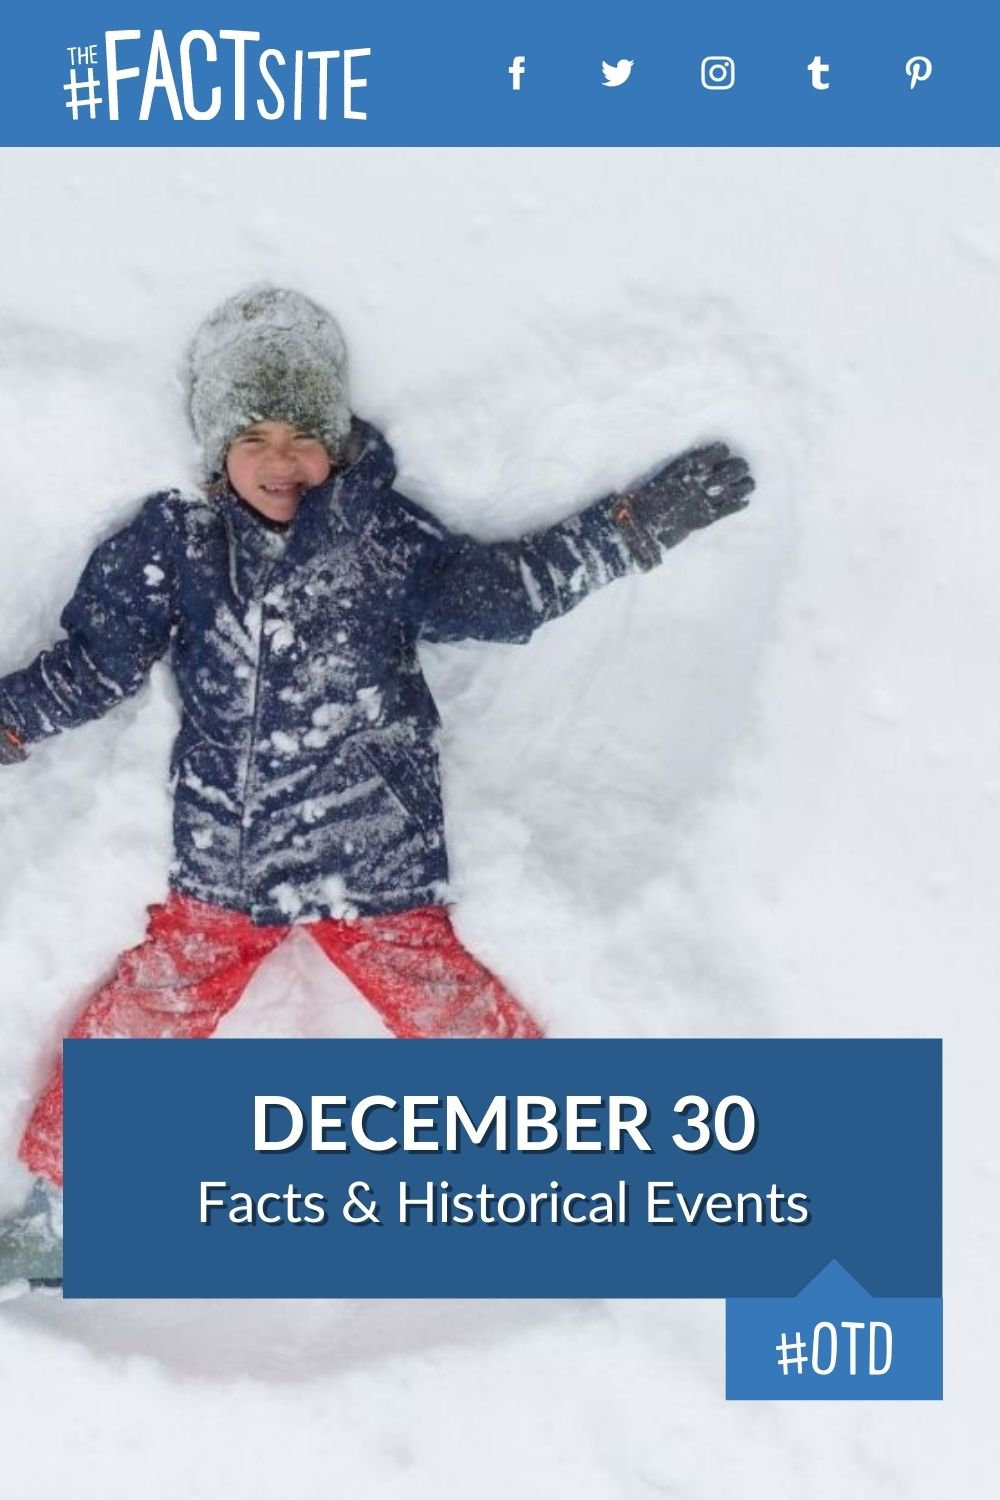 Facts & Historic Events That Happened on December 30